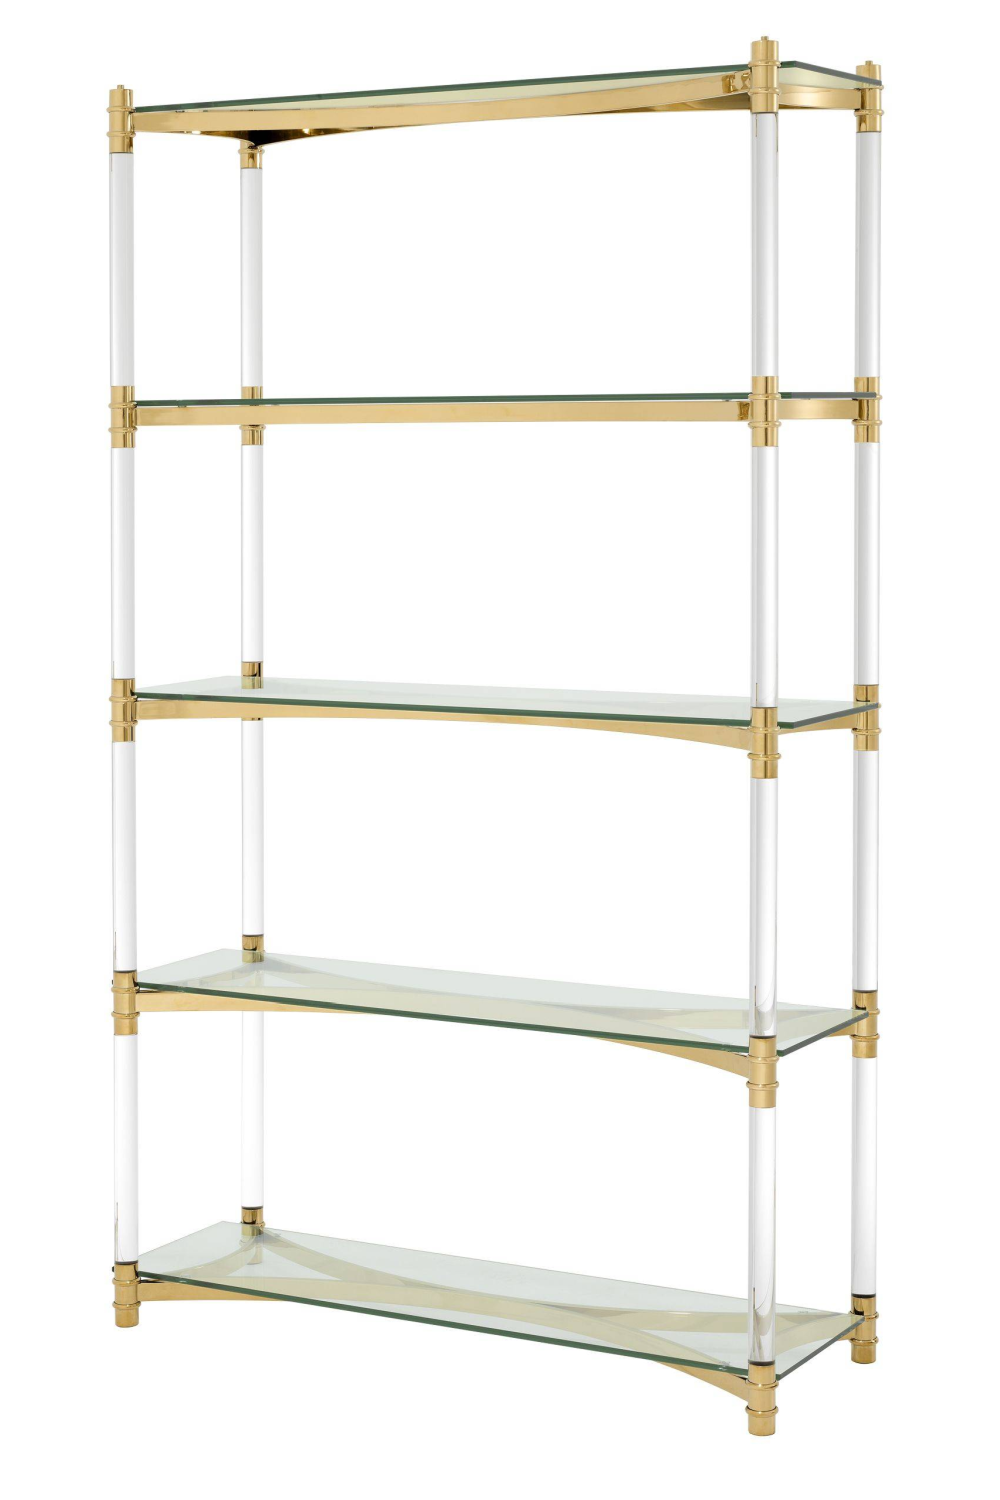 5 Shelf Gold Cabinet | Eichholtz Trento